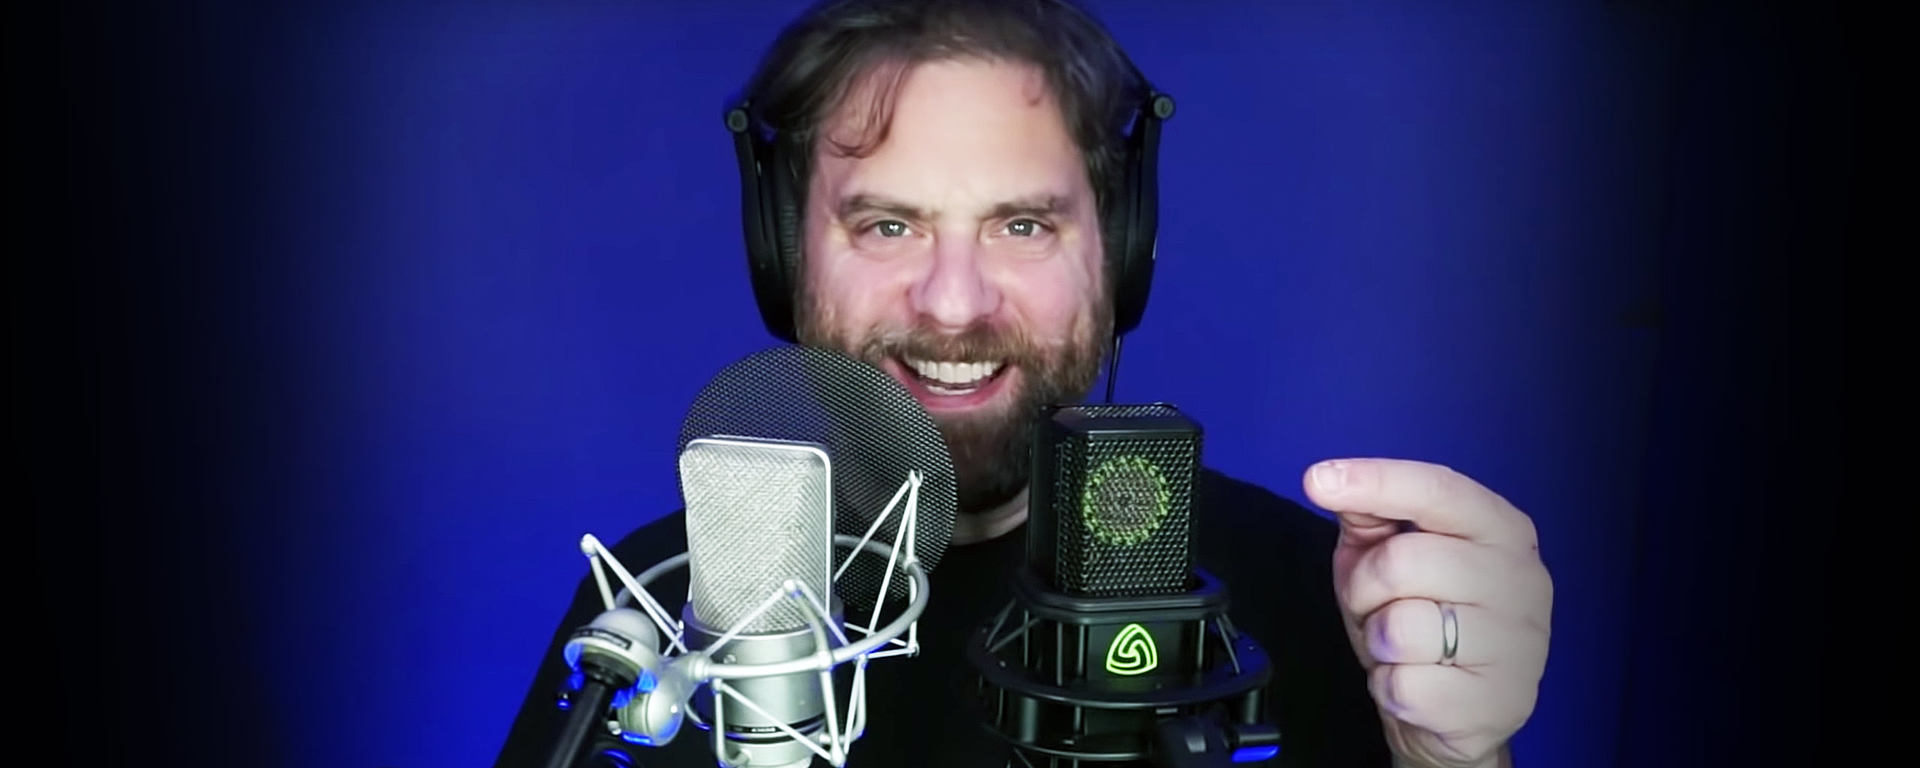 Boothjunkie is doing a shootout between the LCT 540 SUBZERO best studio microphone for voice over & the and the Neumann TLM 103